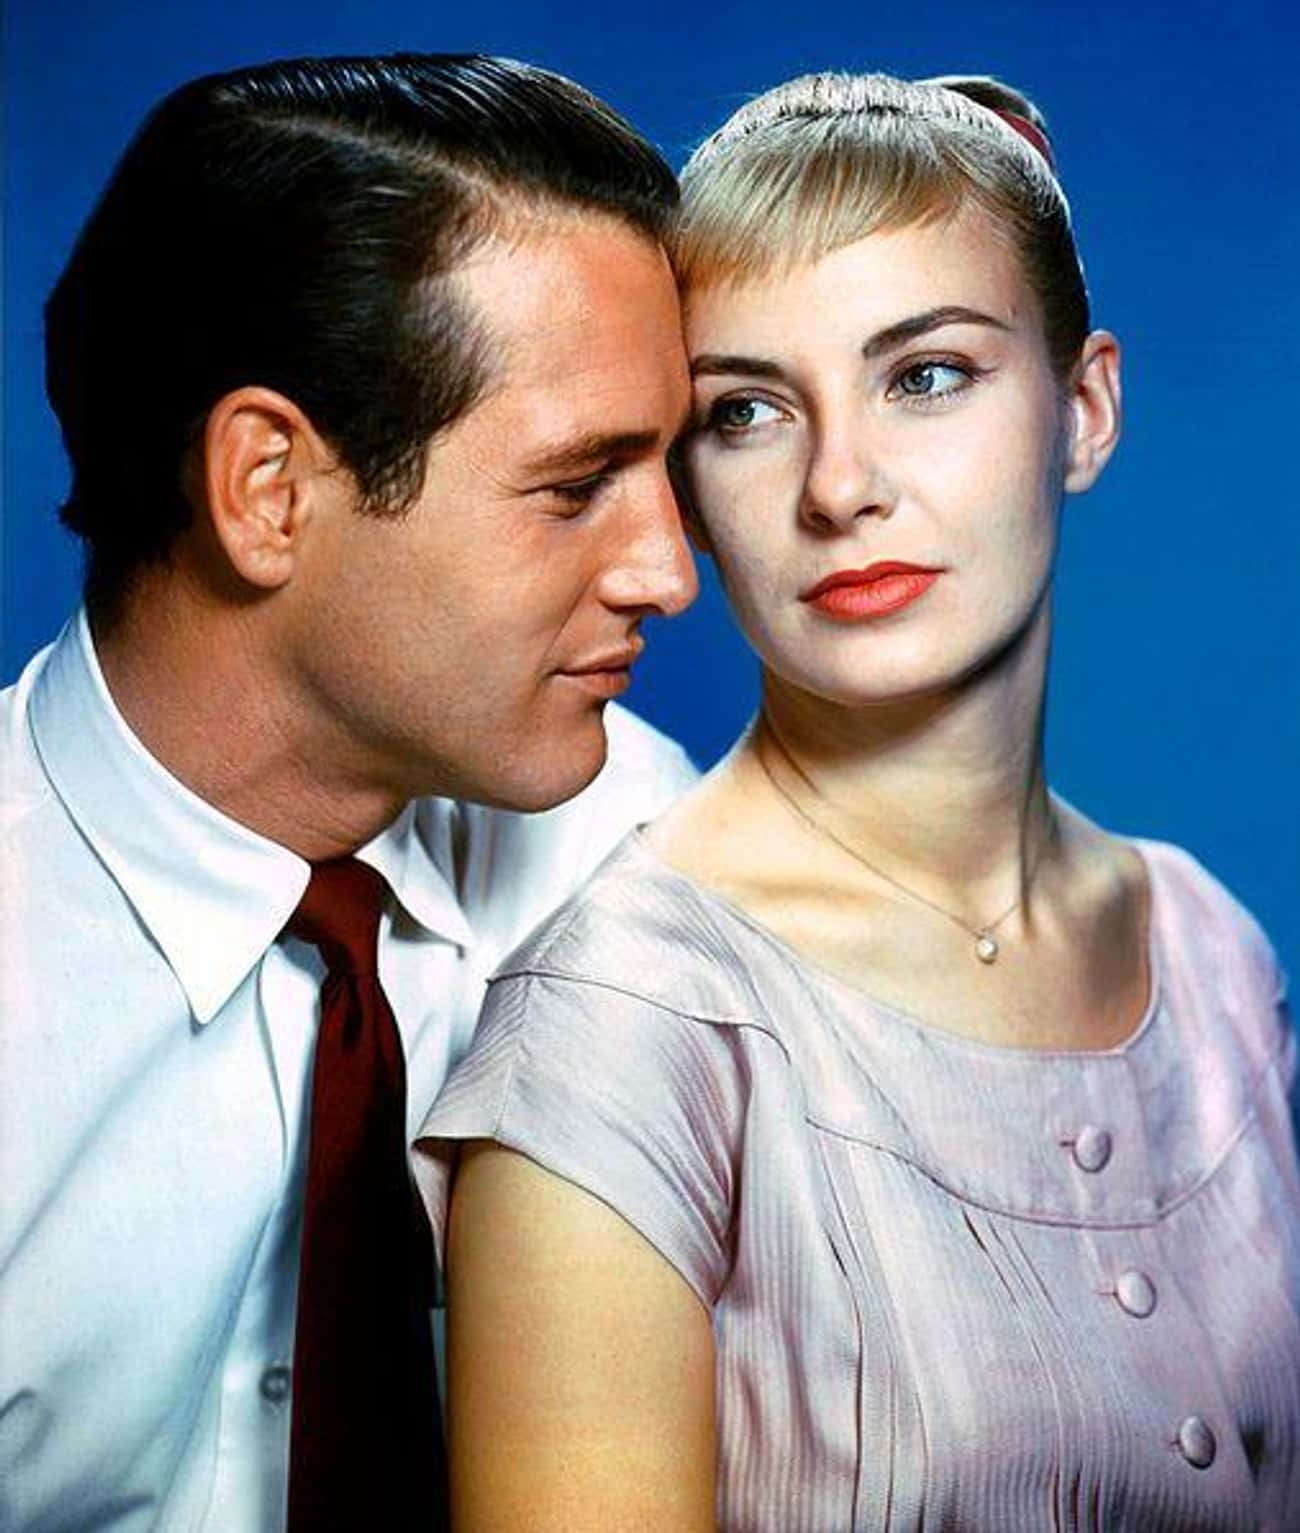 Paul Newman & Joanne Woodward is listed (or ranked) 4 on the list The Longest Hollywood Marriages